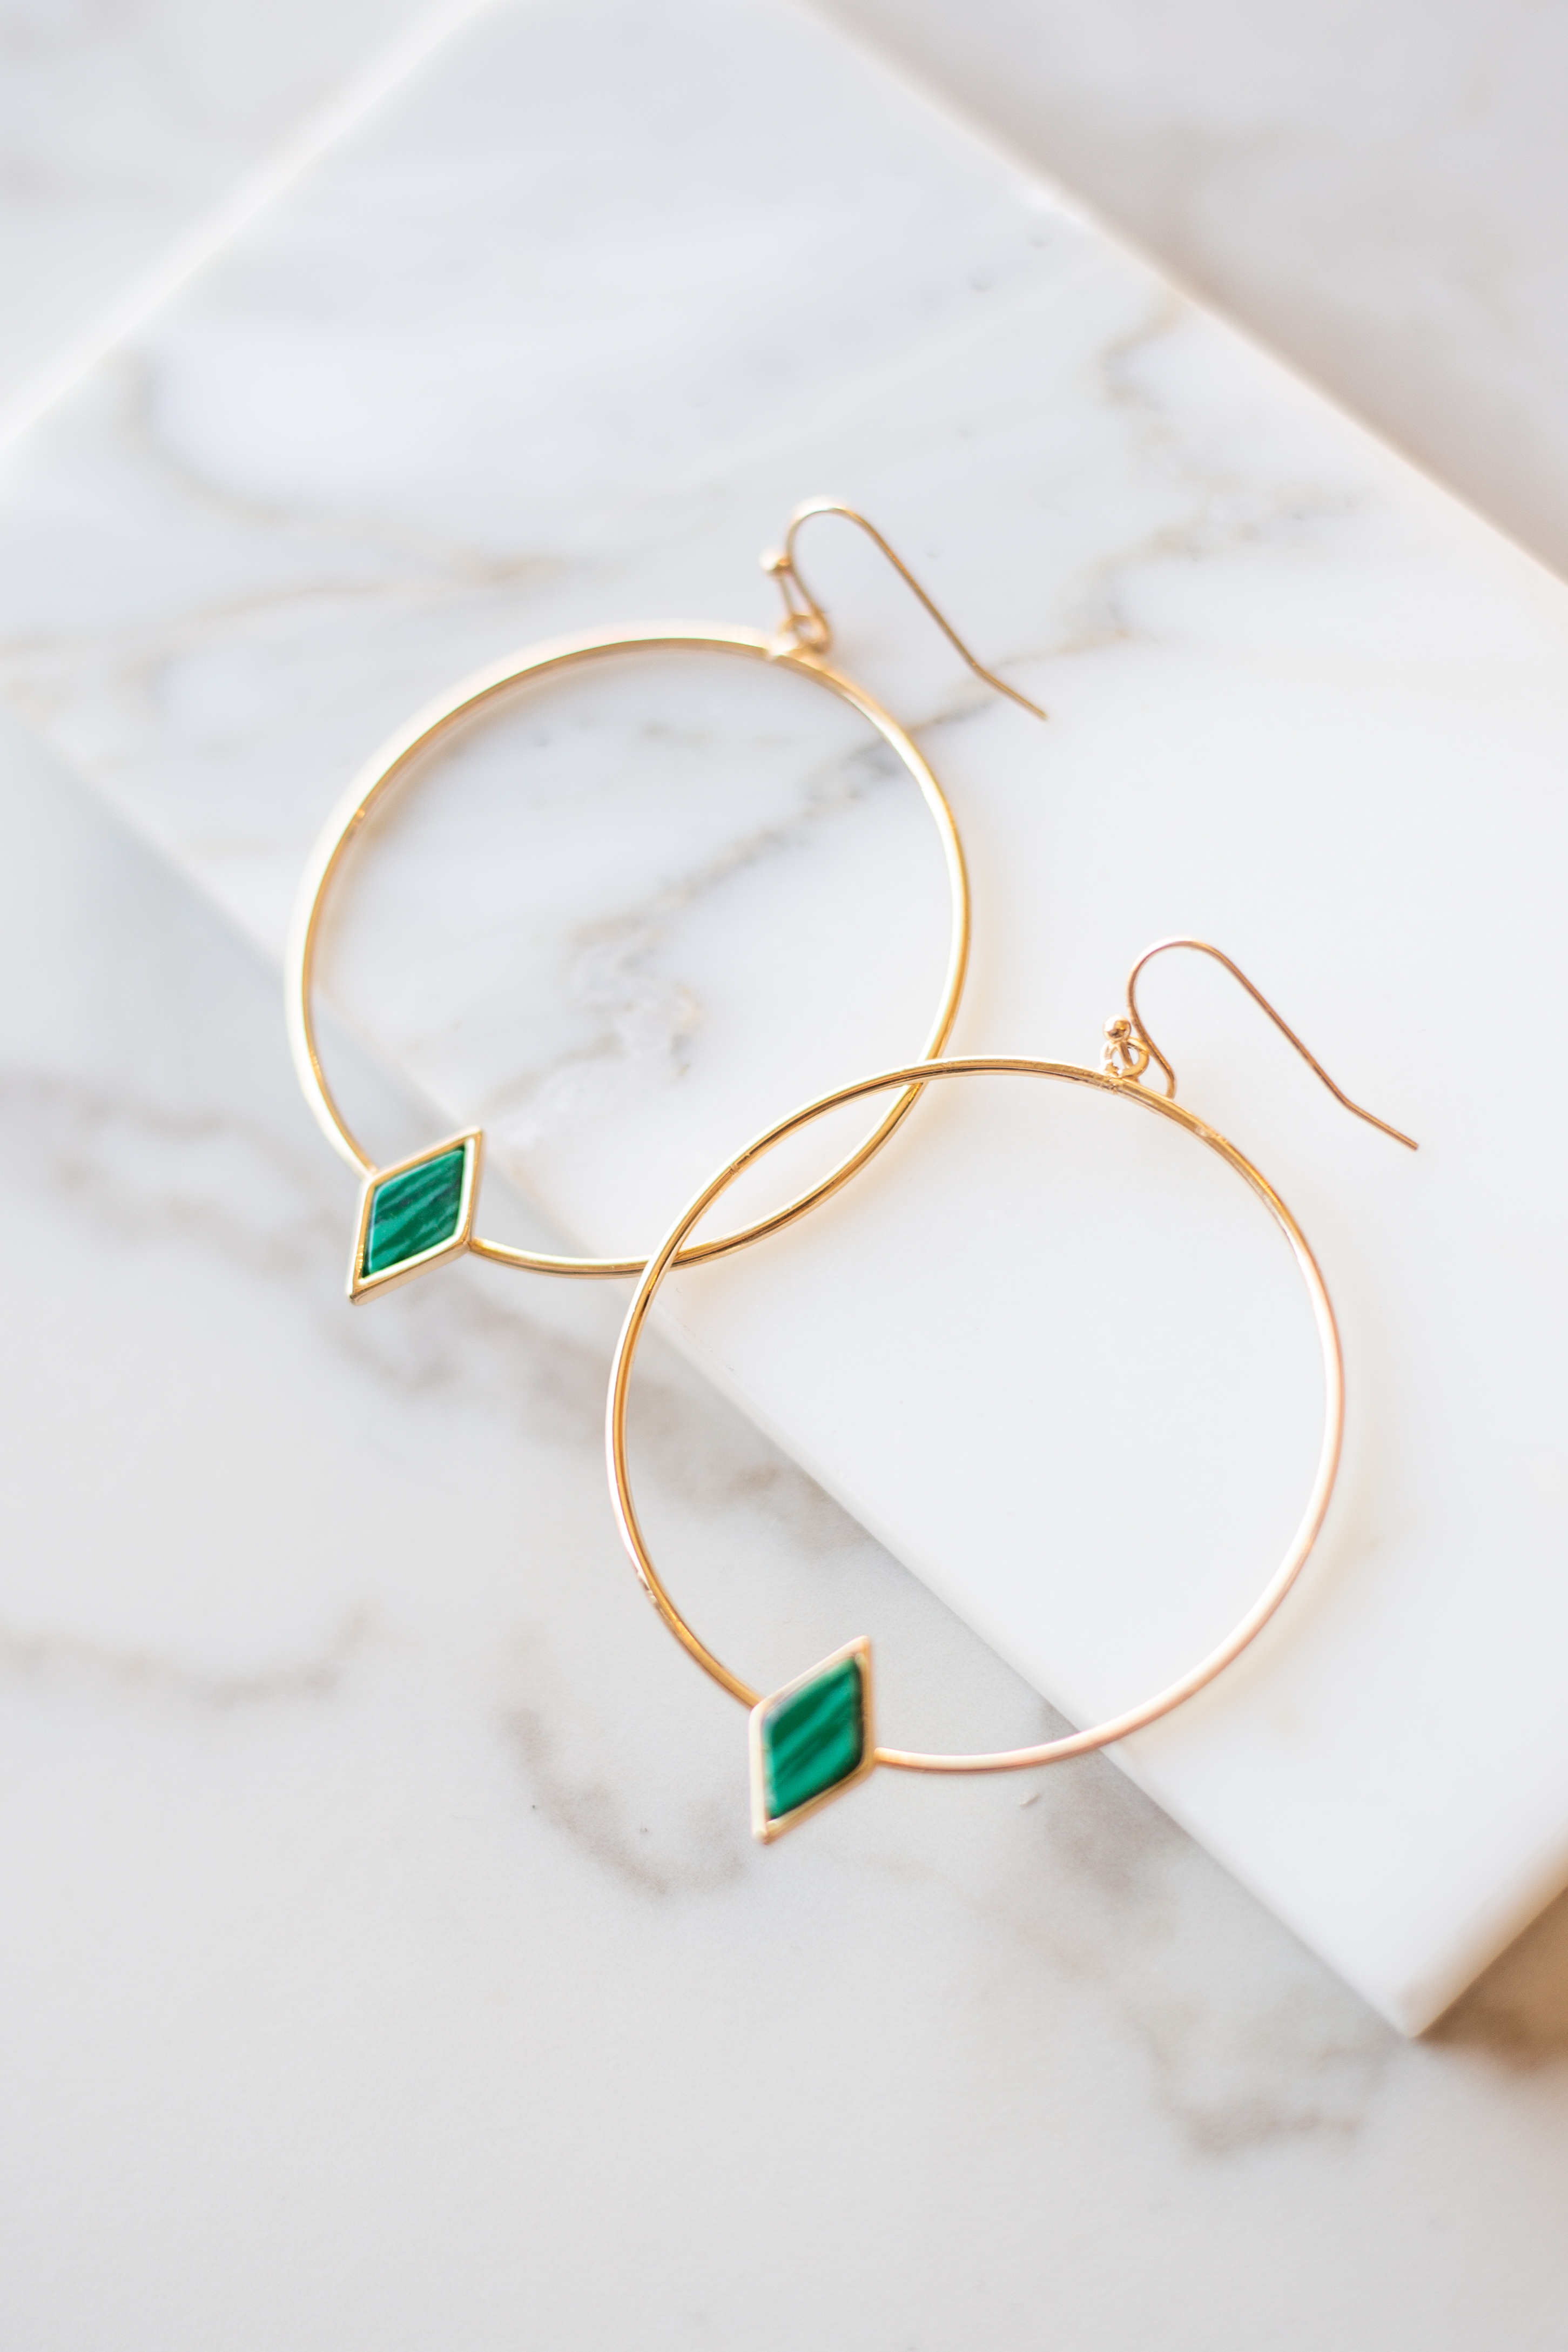 Gold Hoop Earrings with Tiny Green Stone Detail